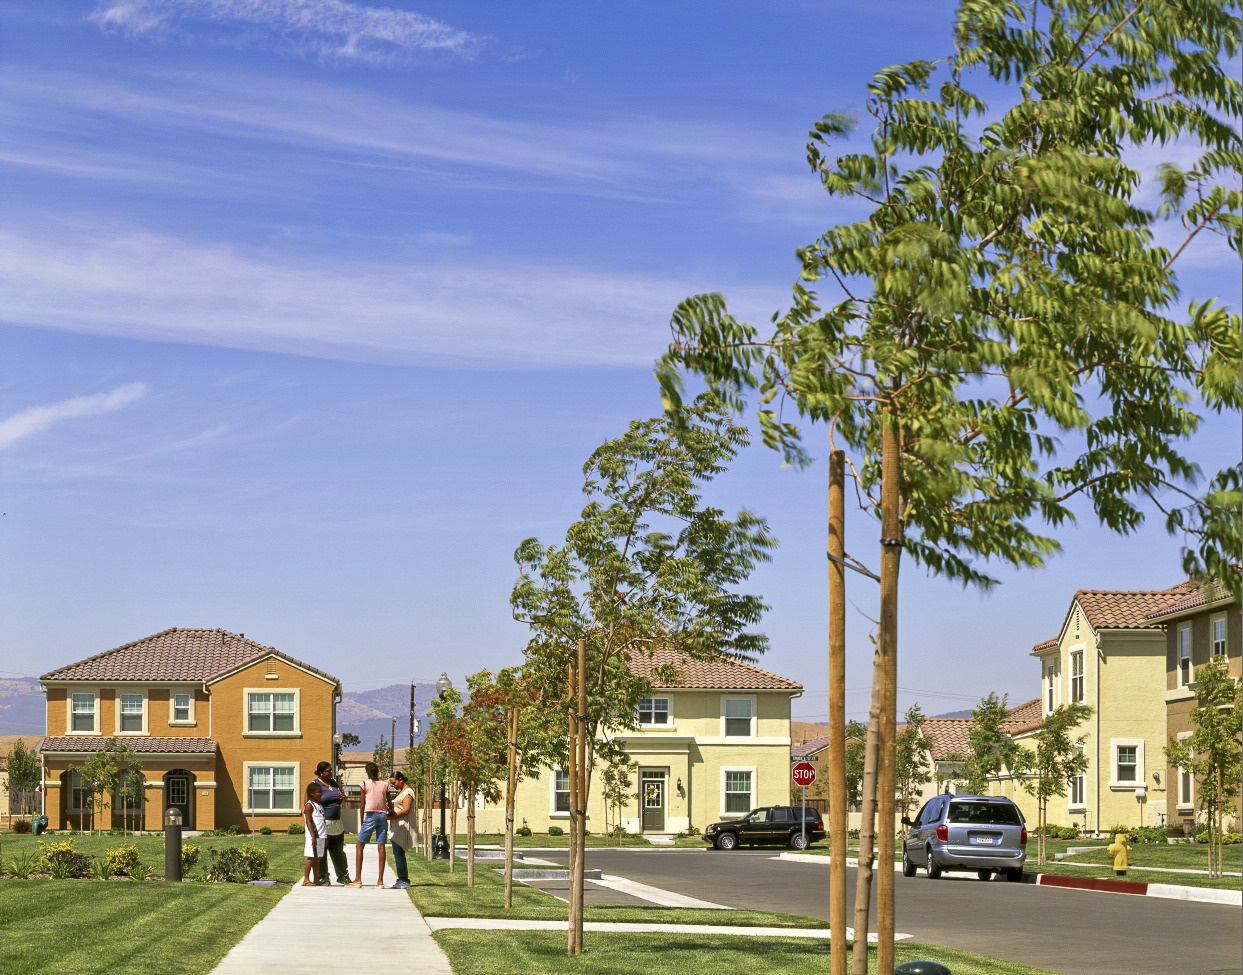 CBG builds The Village at Camp Parks, a 114 Single-Family Homes and Neighborhood Center in Dublin, CA - Image #3